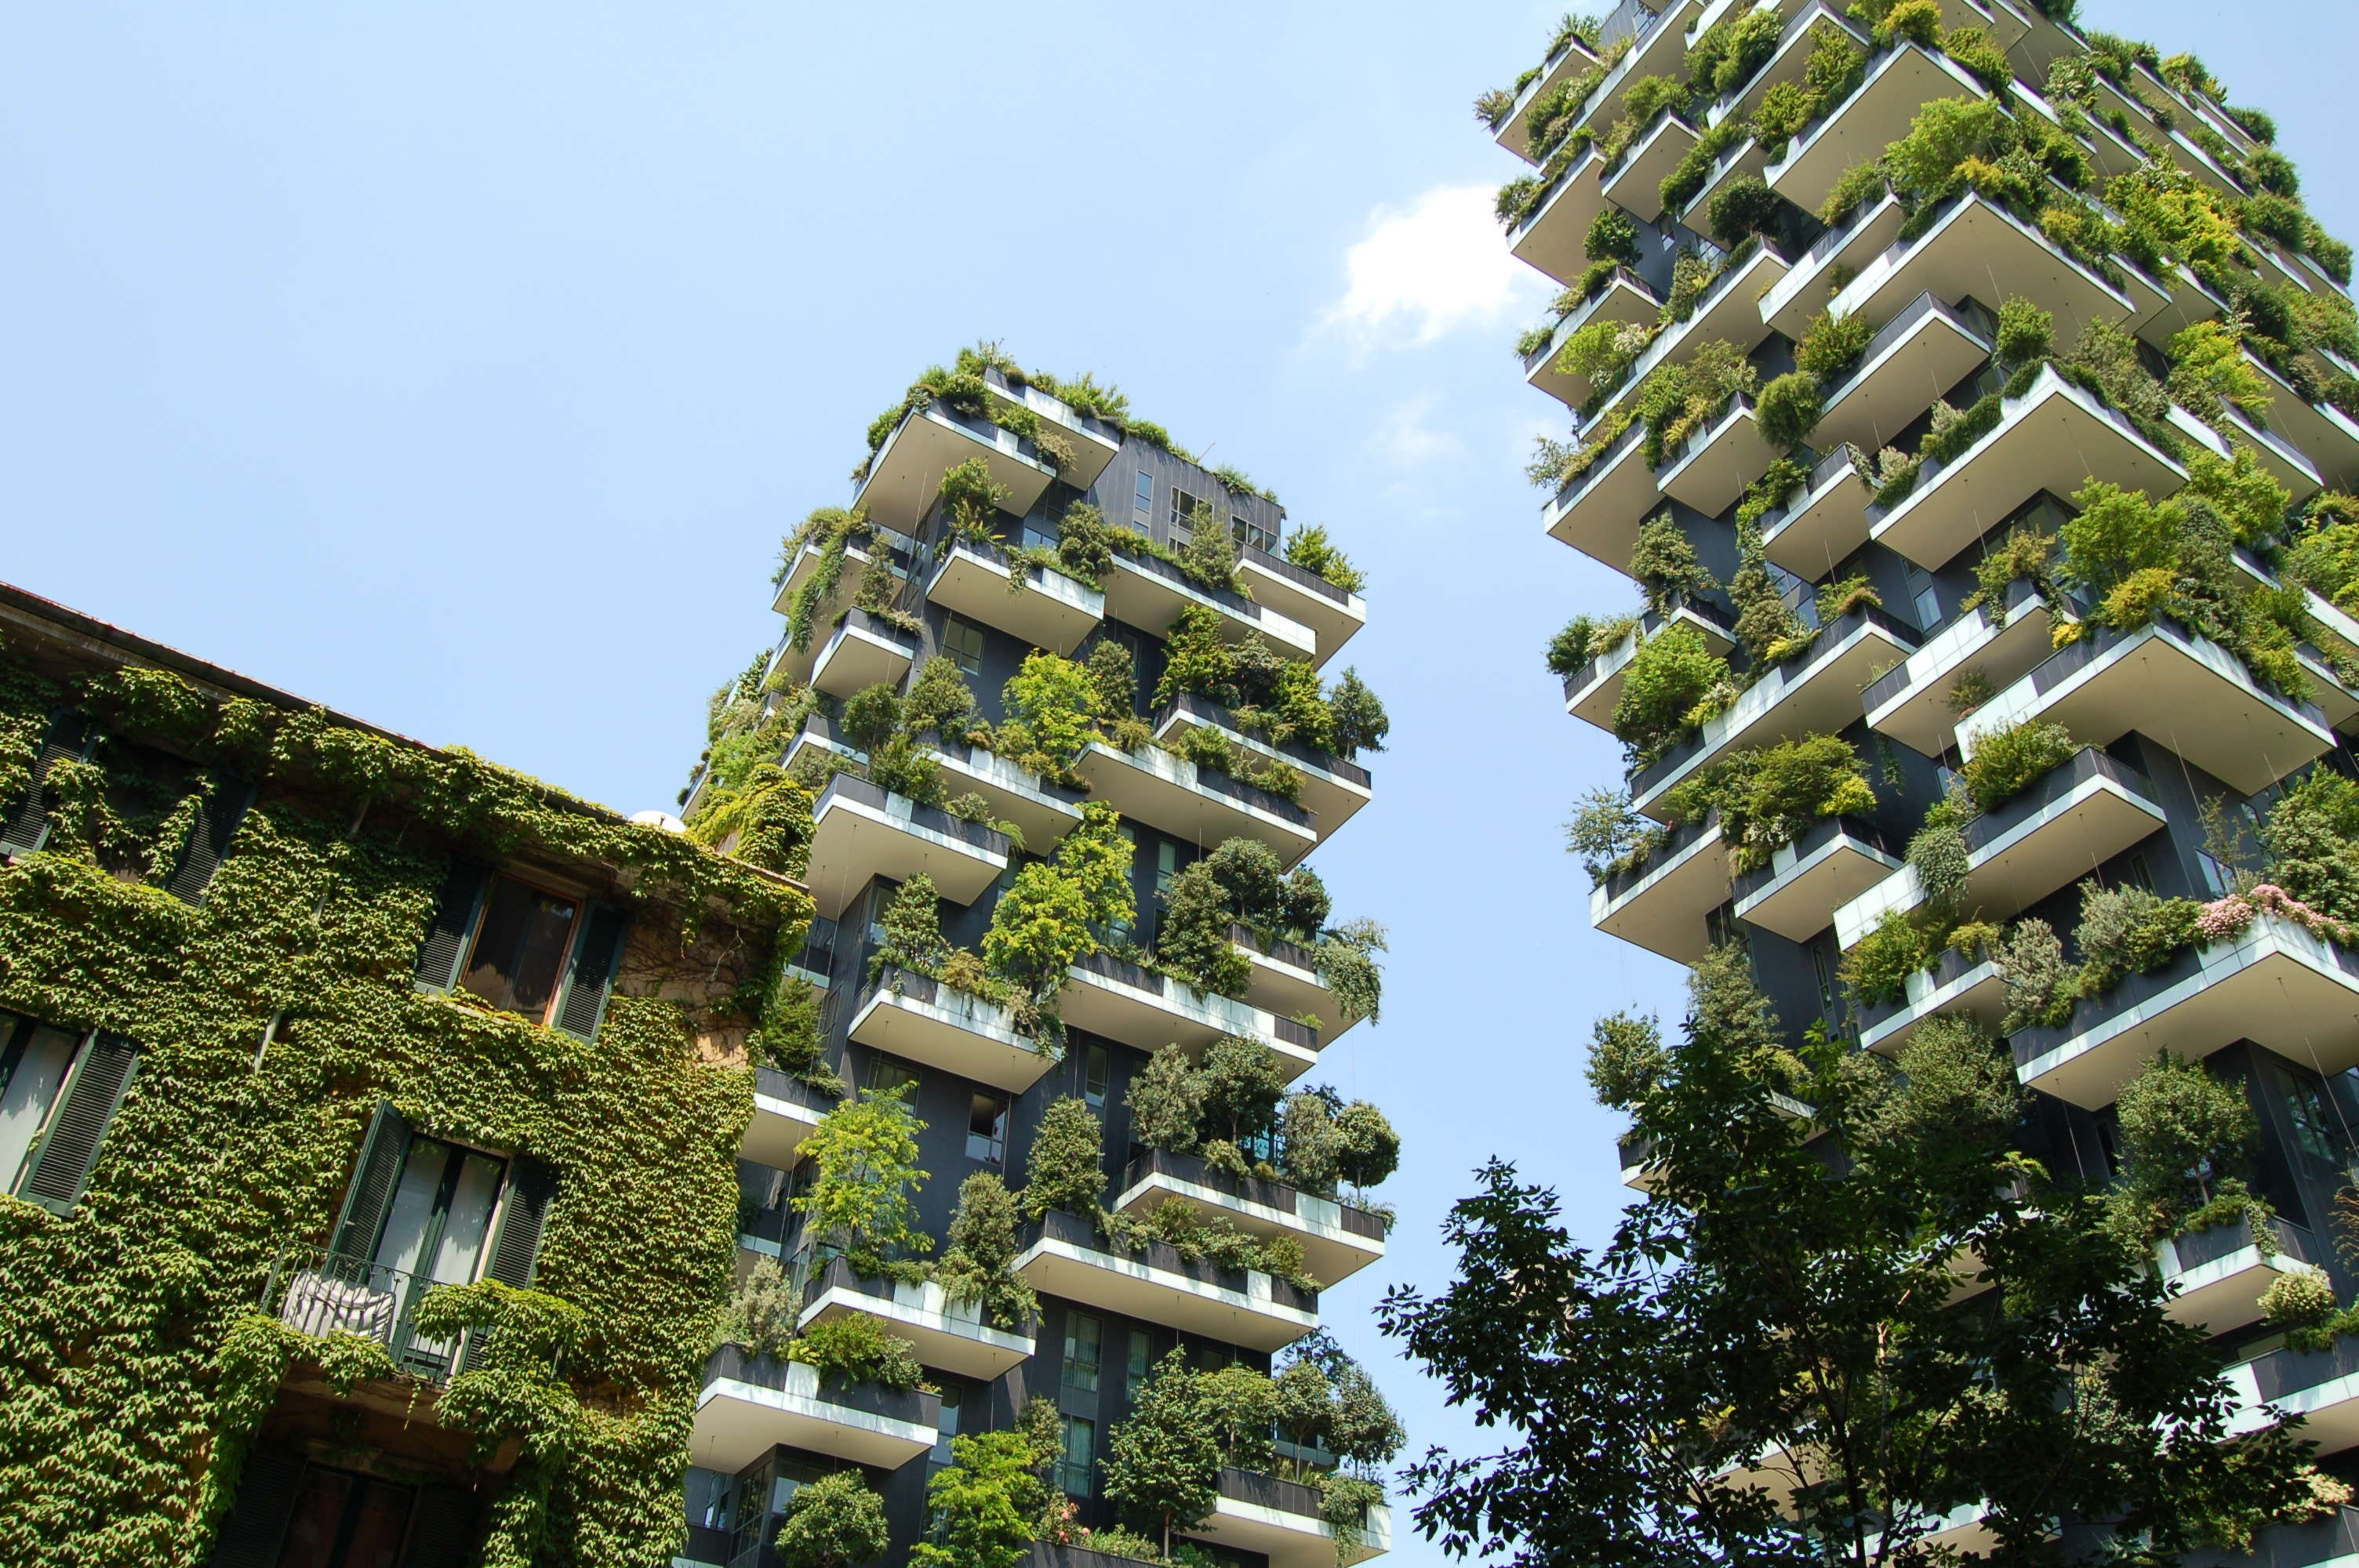 People are less likely to fall sick in green buildings, study finds